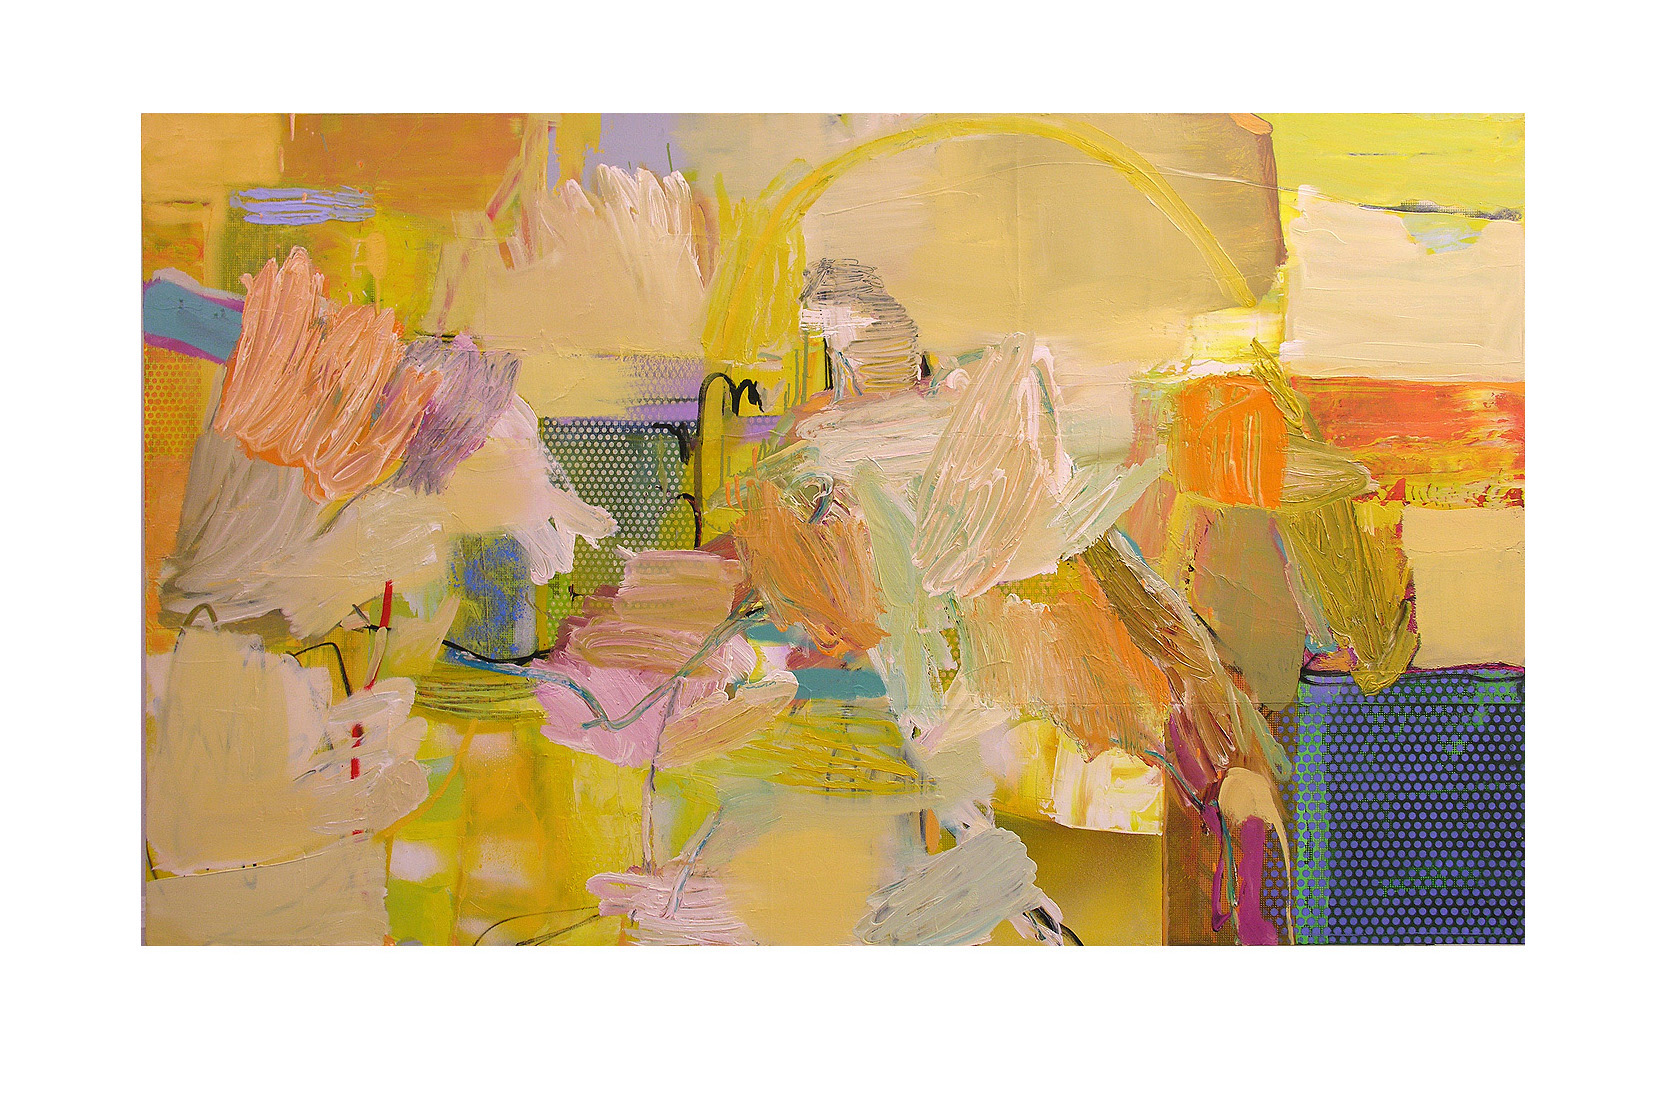 Abstract N87, 90 x 150 cm, oil on canvas